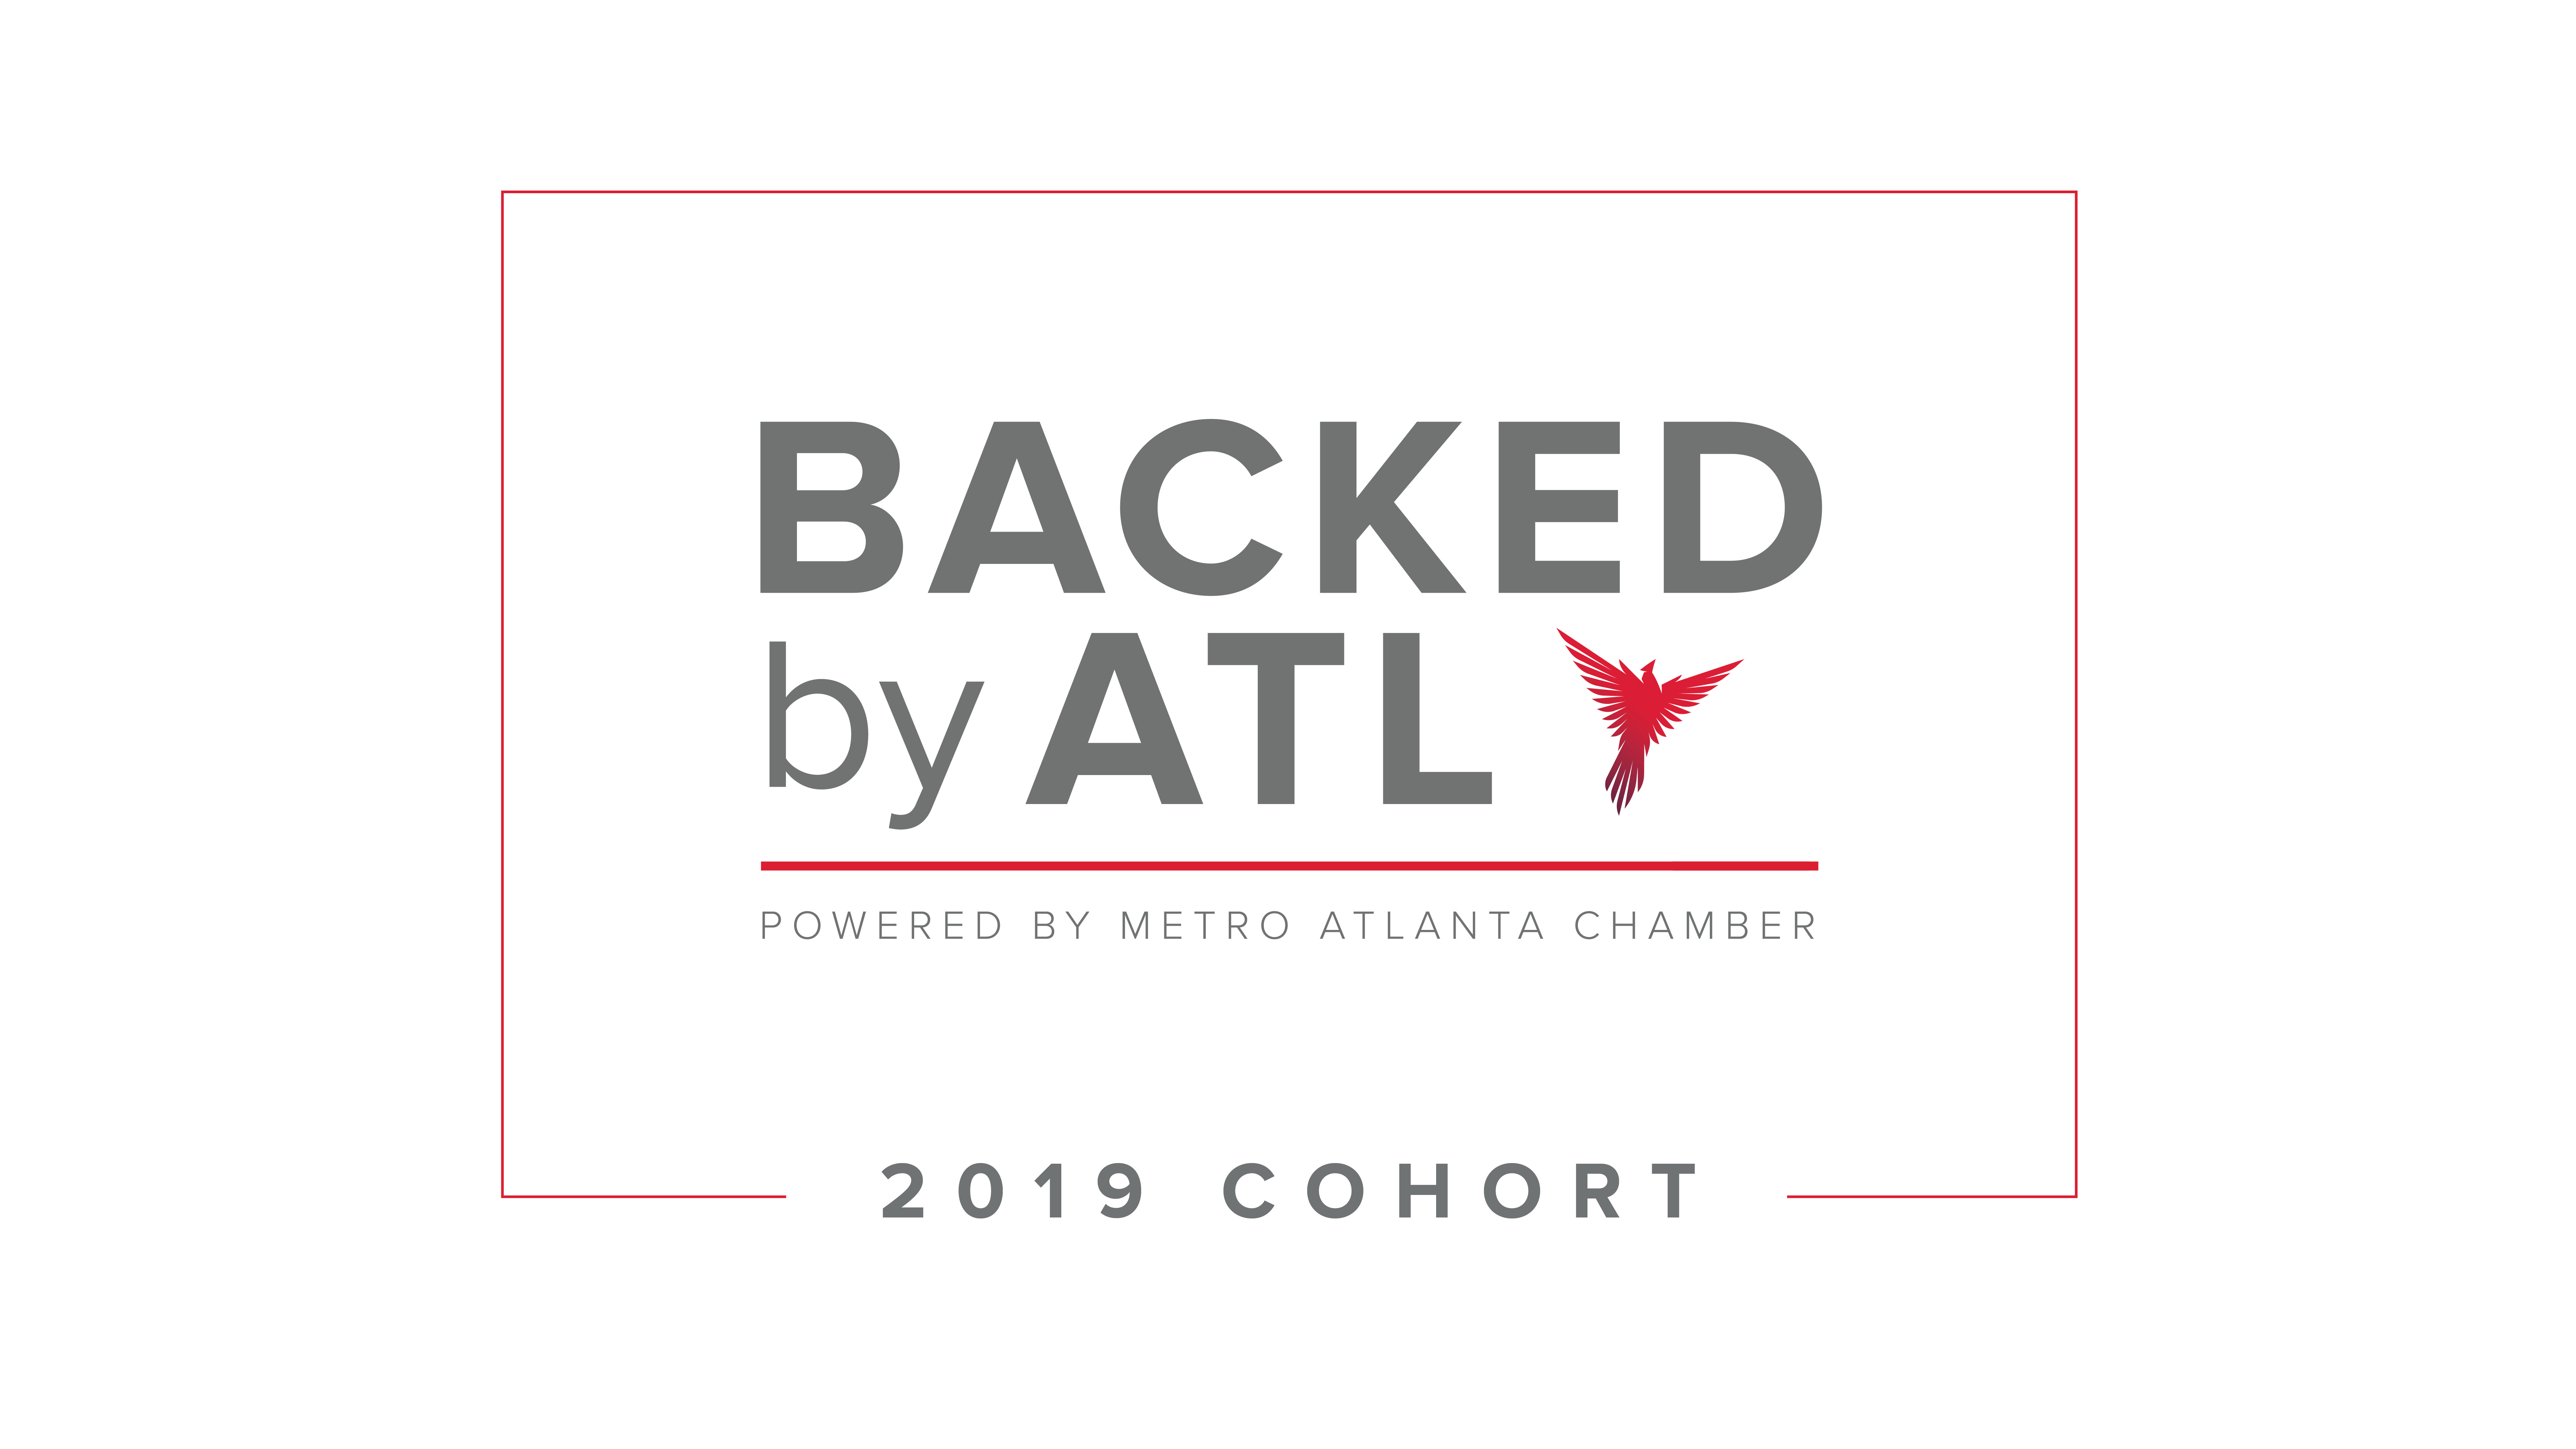 backed_by_atl_cohort.jpg